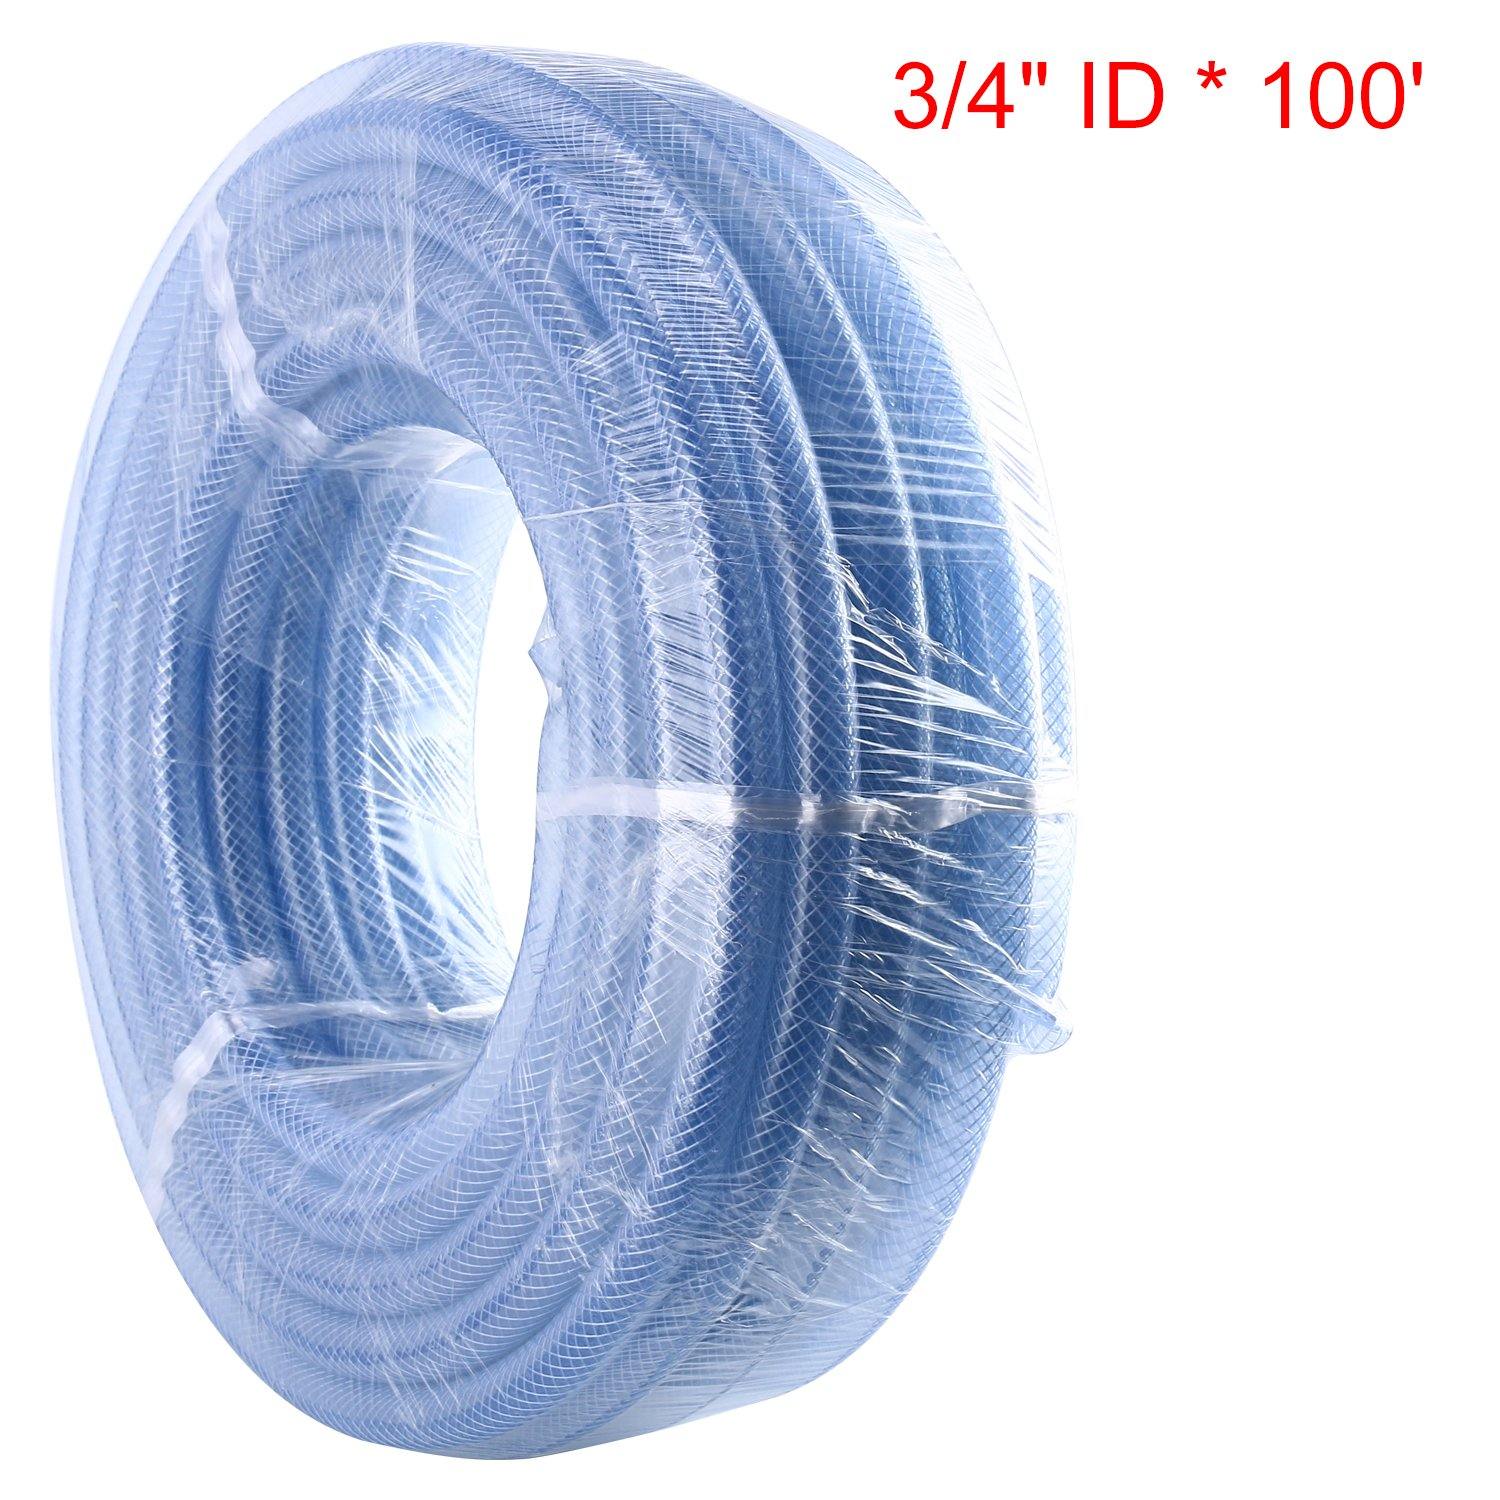 High Pressure Braided Clear Flexible PVC Tubing Heavy Duty UV Chemical Resistant Vinyl Hose Antifreeze Fiber Reinforced Nylon Tubing for Household and Industrial Use 6.5-Feet, ID:9mmOD:14.5mm